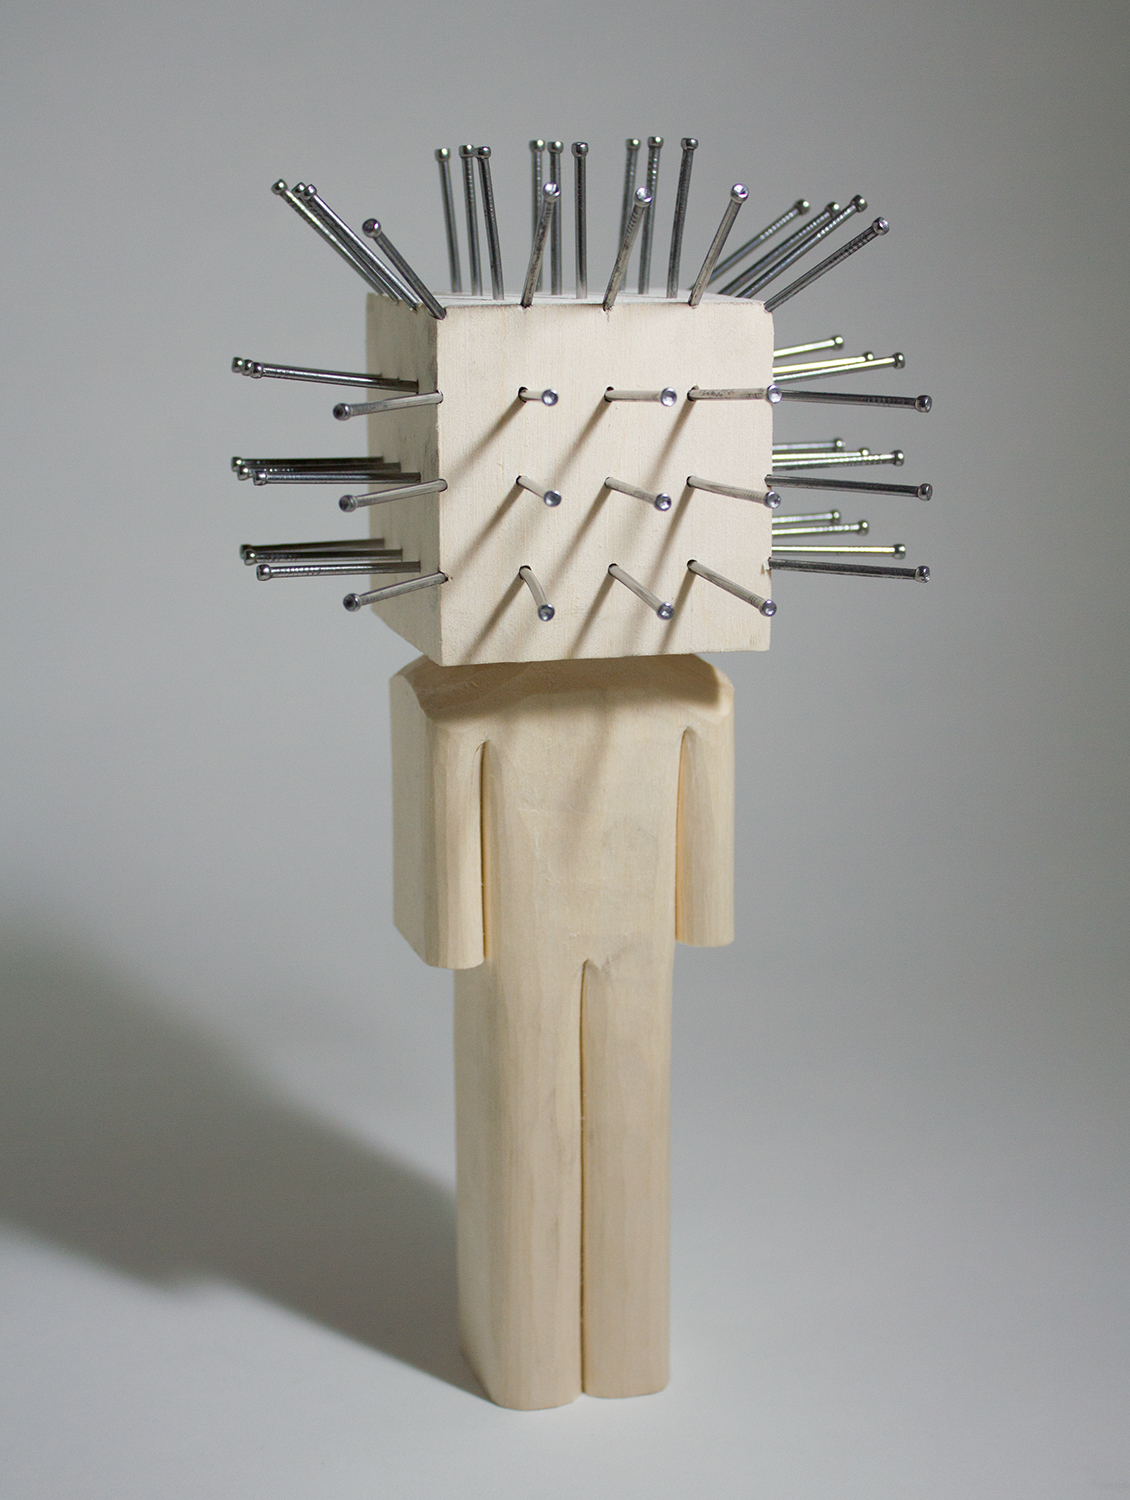 """""""Pinhead"""" Basswood and nails. 8.5 x 4.5 x 3.25 inches. CSK 012G"""